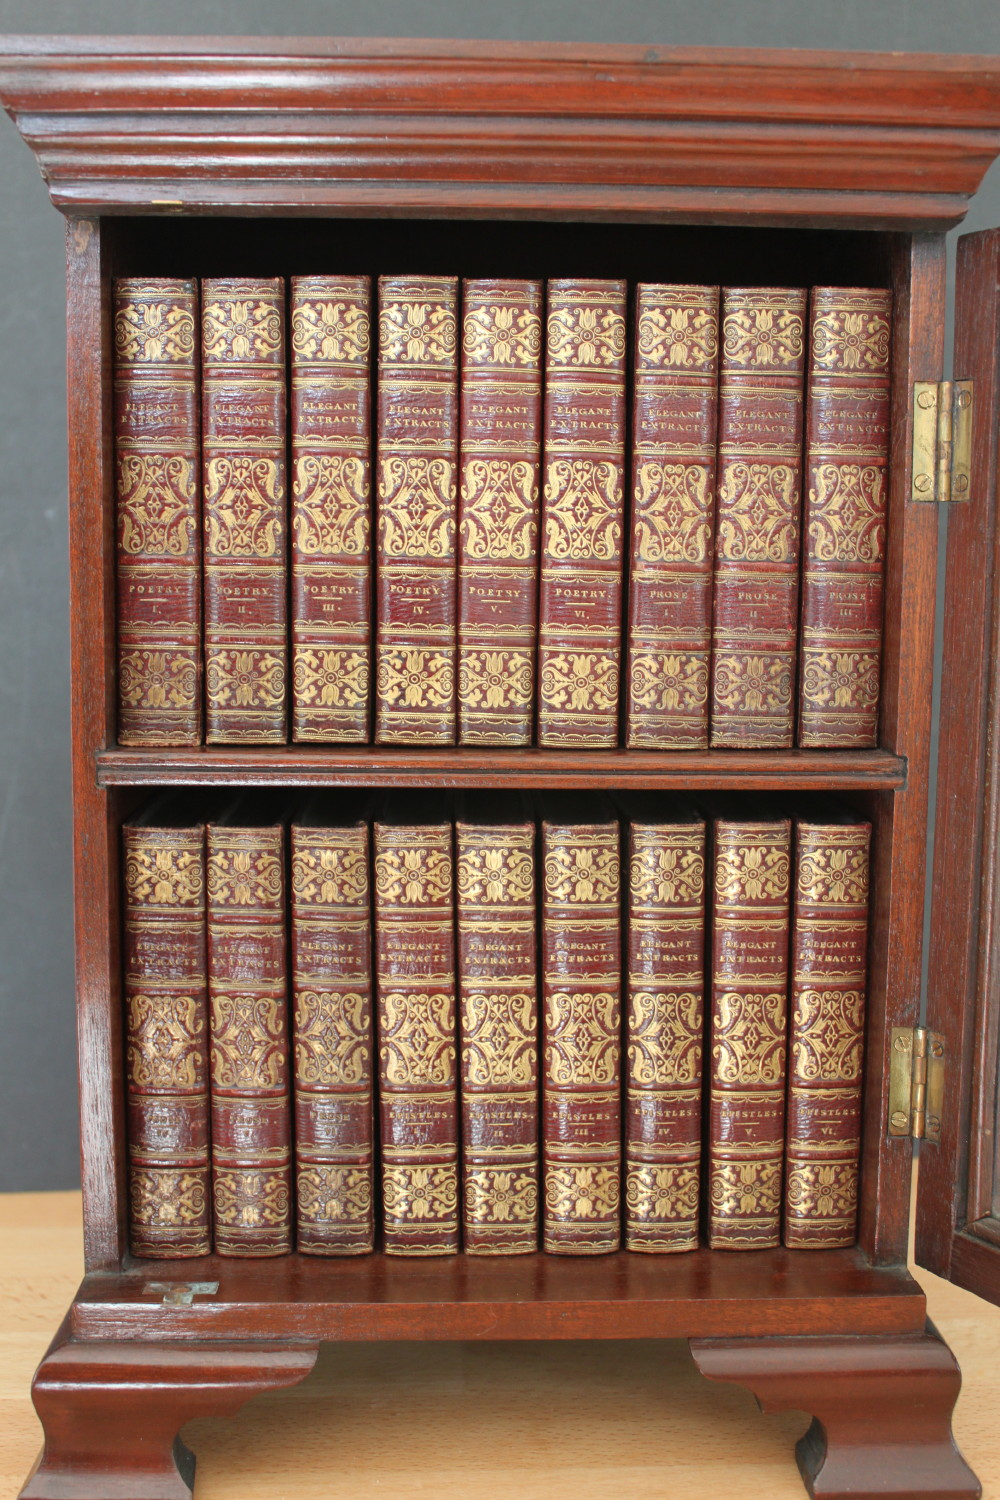 Image for Elegant Extracts. Poetry, 6 volumes; Prose, 6 volumes; Epistles, 6 volumes. Complete set of 18 volumes. [or 36 volumes in 18].